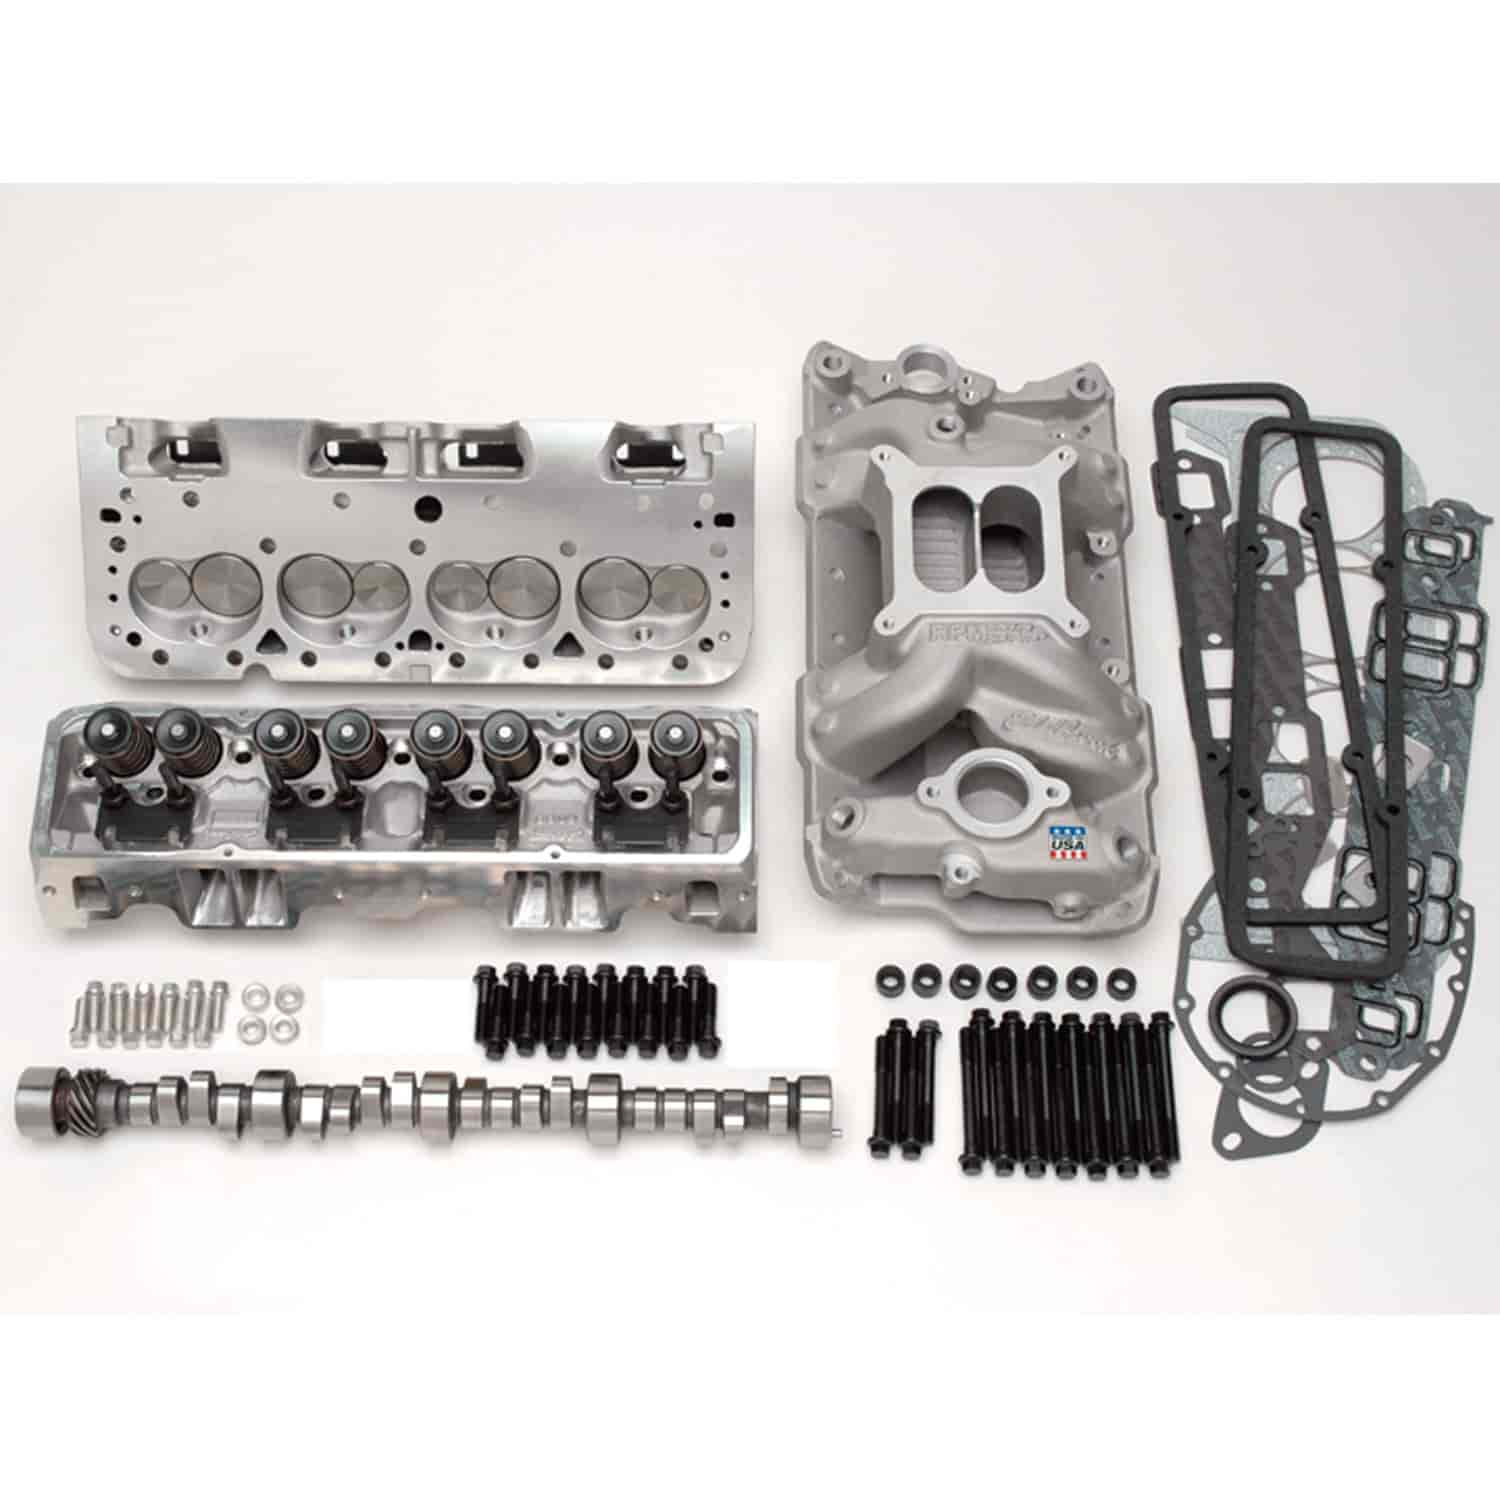 Edelbrock 2099 - Edelbrock Power Package Top End Kits